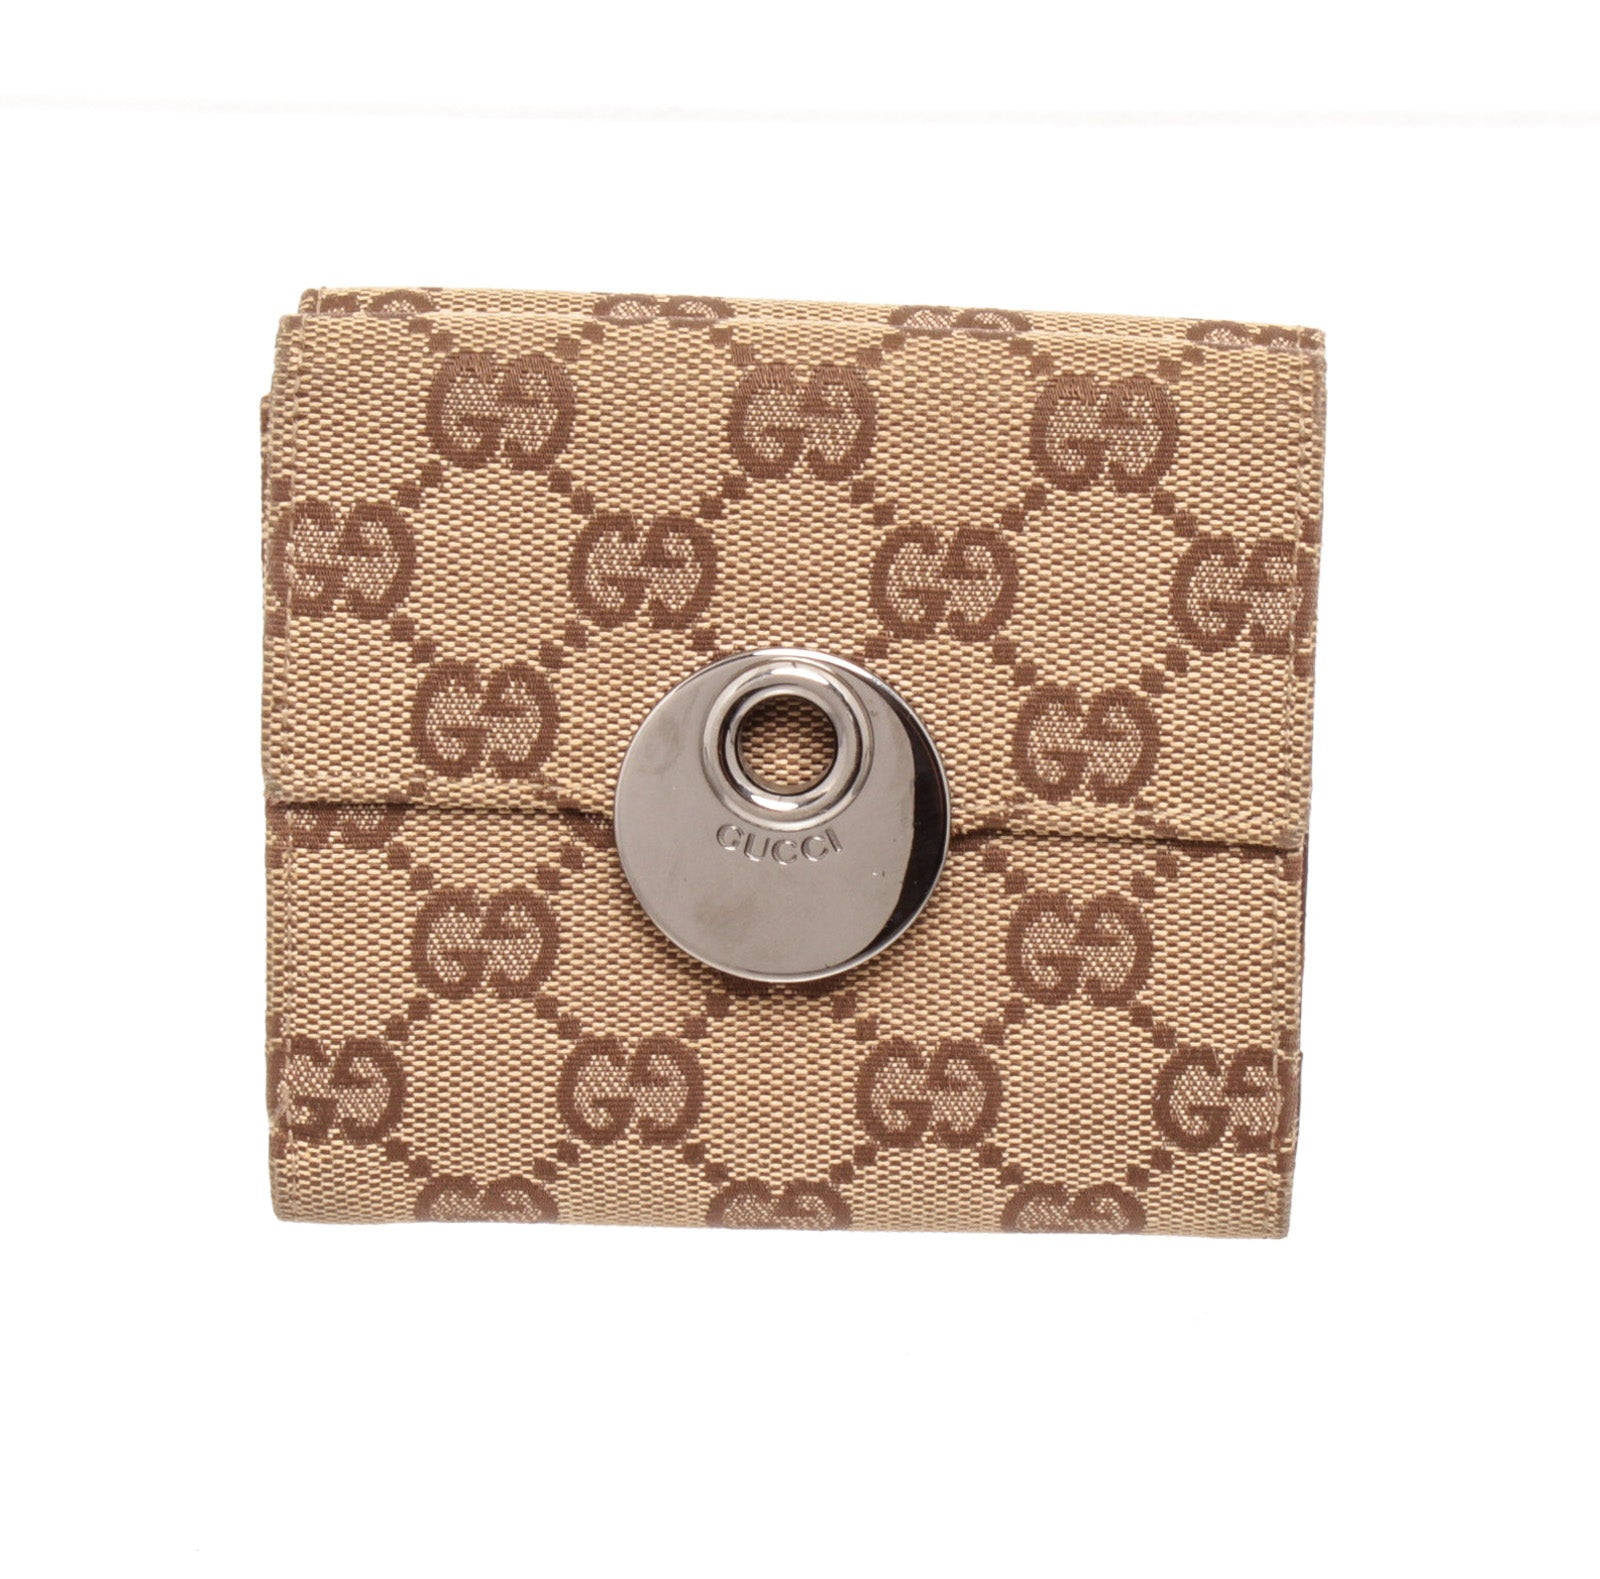 Gucci Beige Brown GG Canvas Leather Two Way Wallet